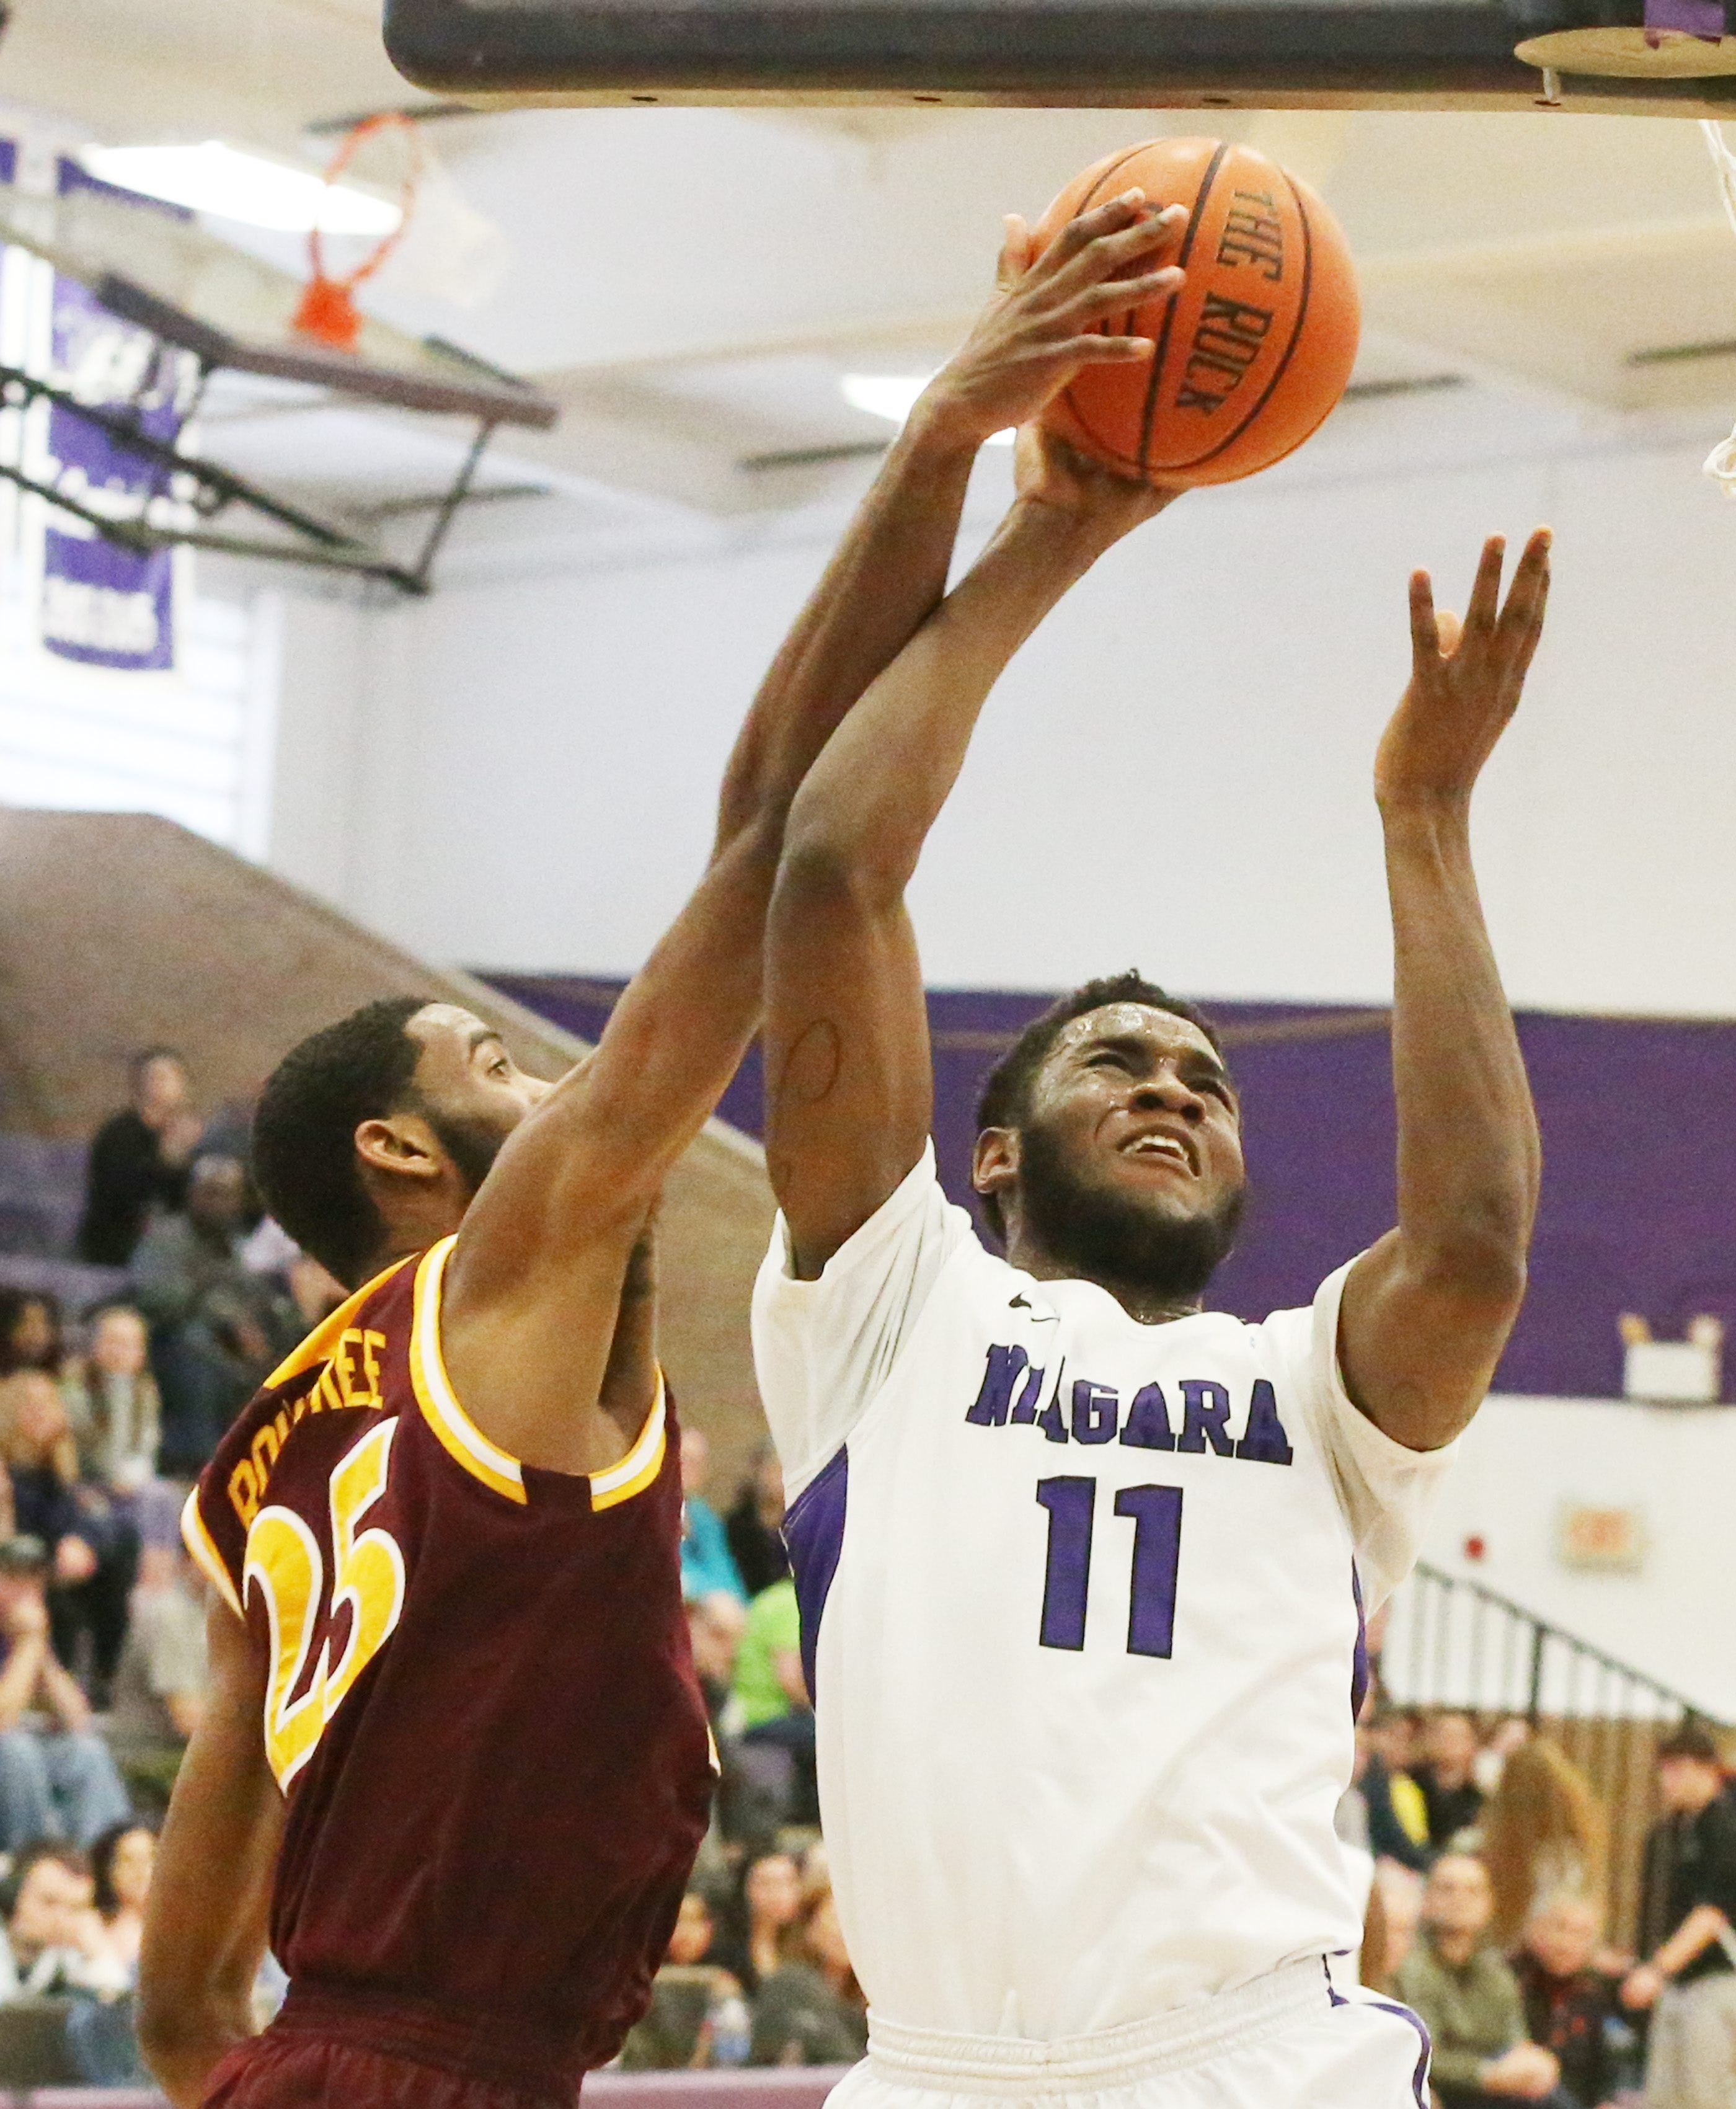 Niagara forward Marvin Prochet is fouled by Iona forward Aaron Rountree Sunday at the Gallagher Center.